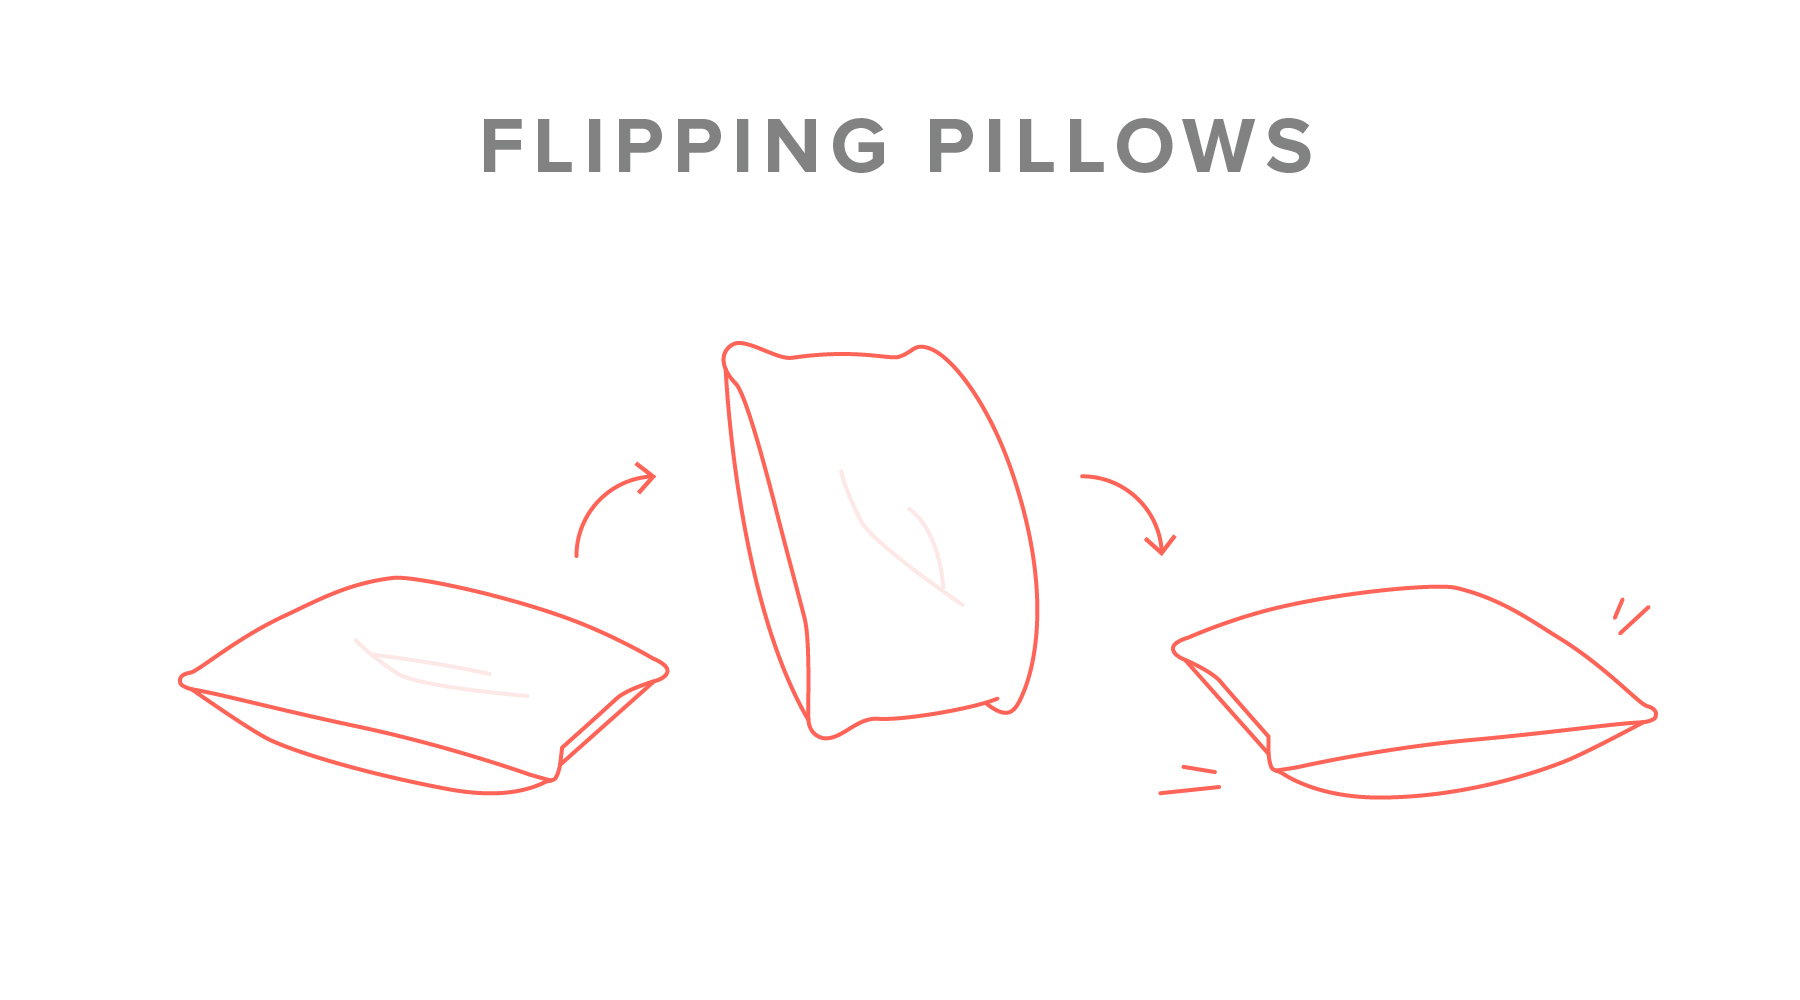 Illustration showing how to flip and rotate pillows